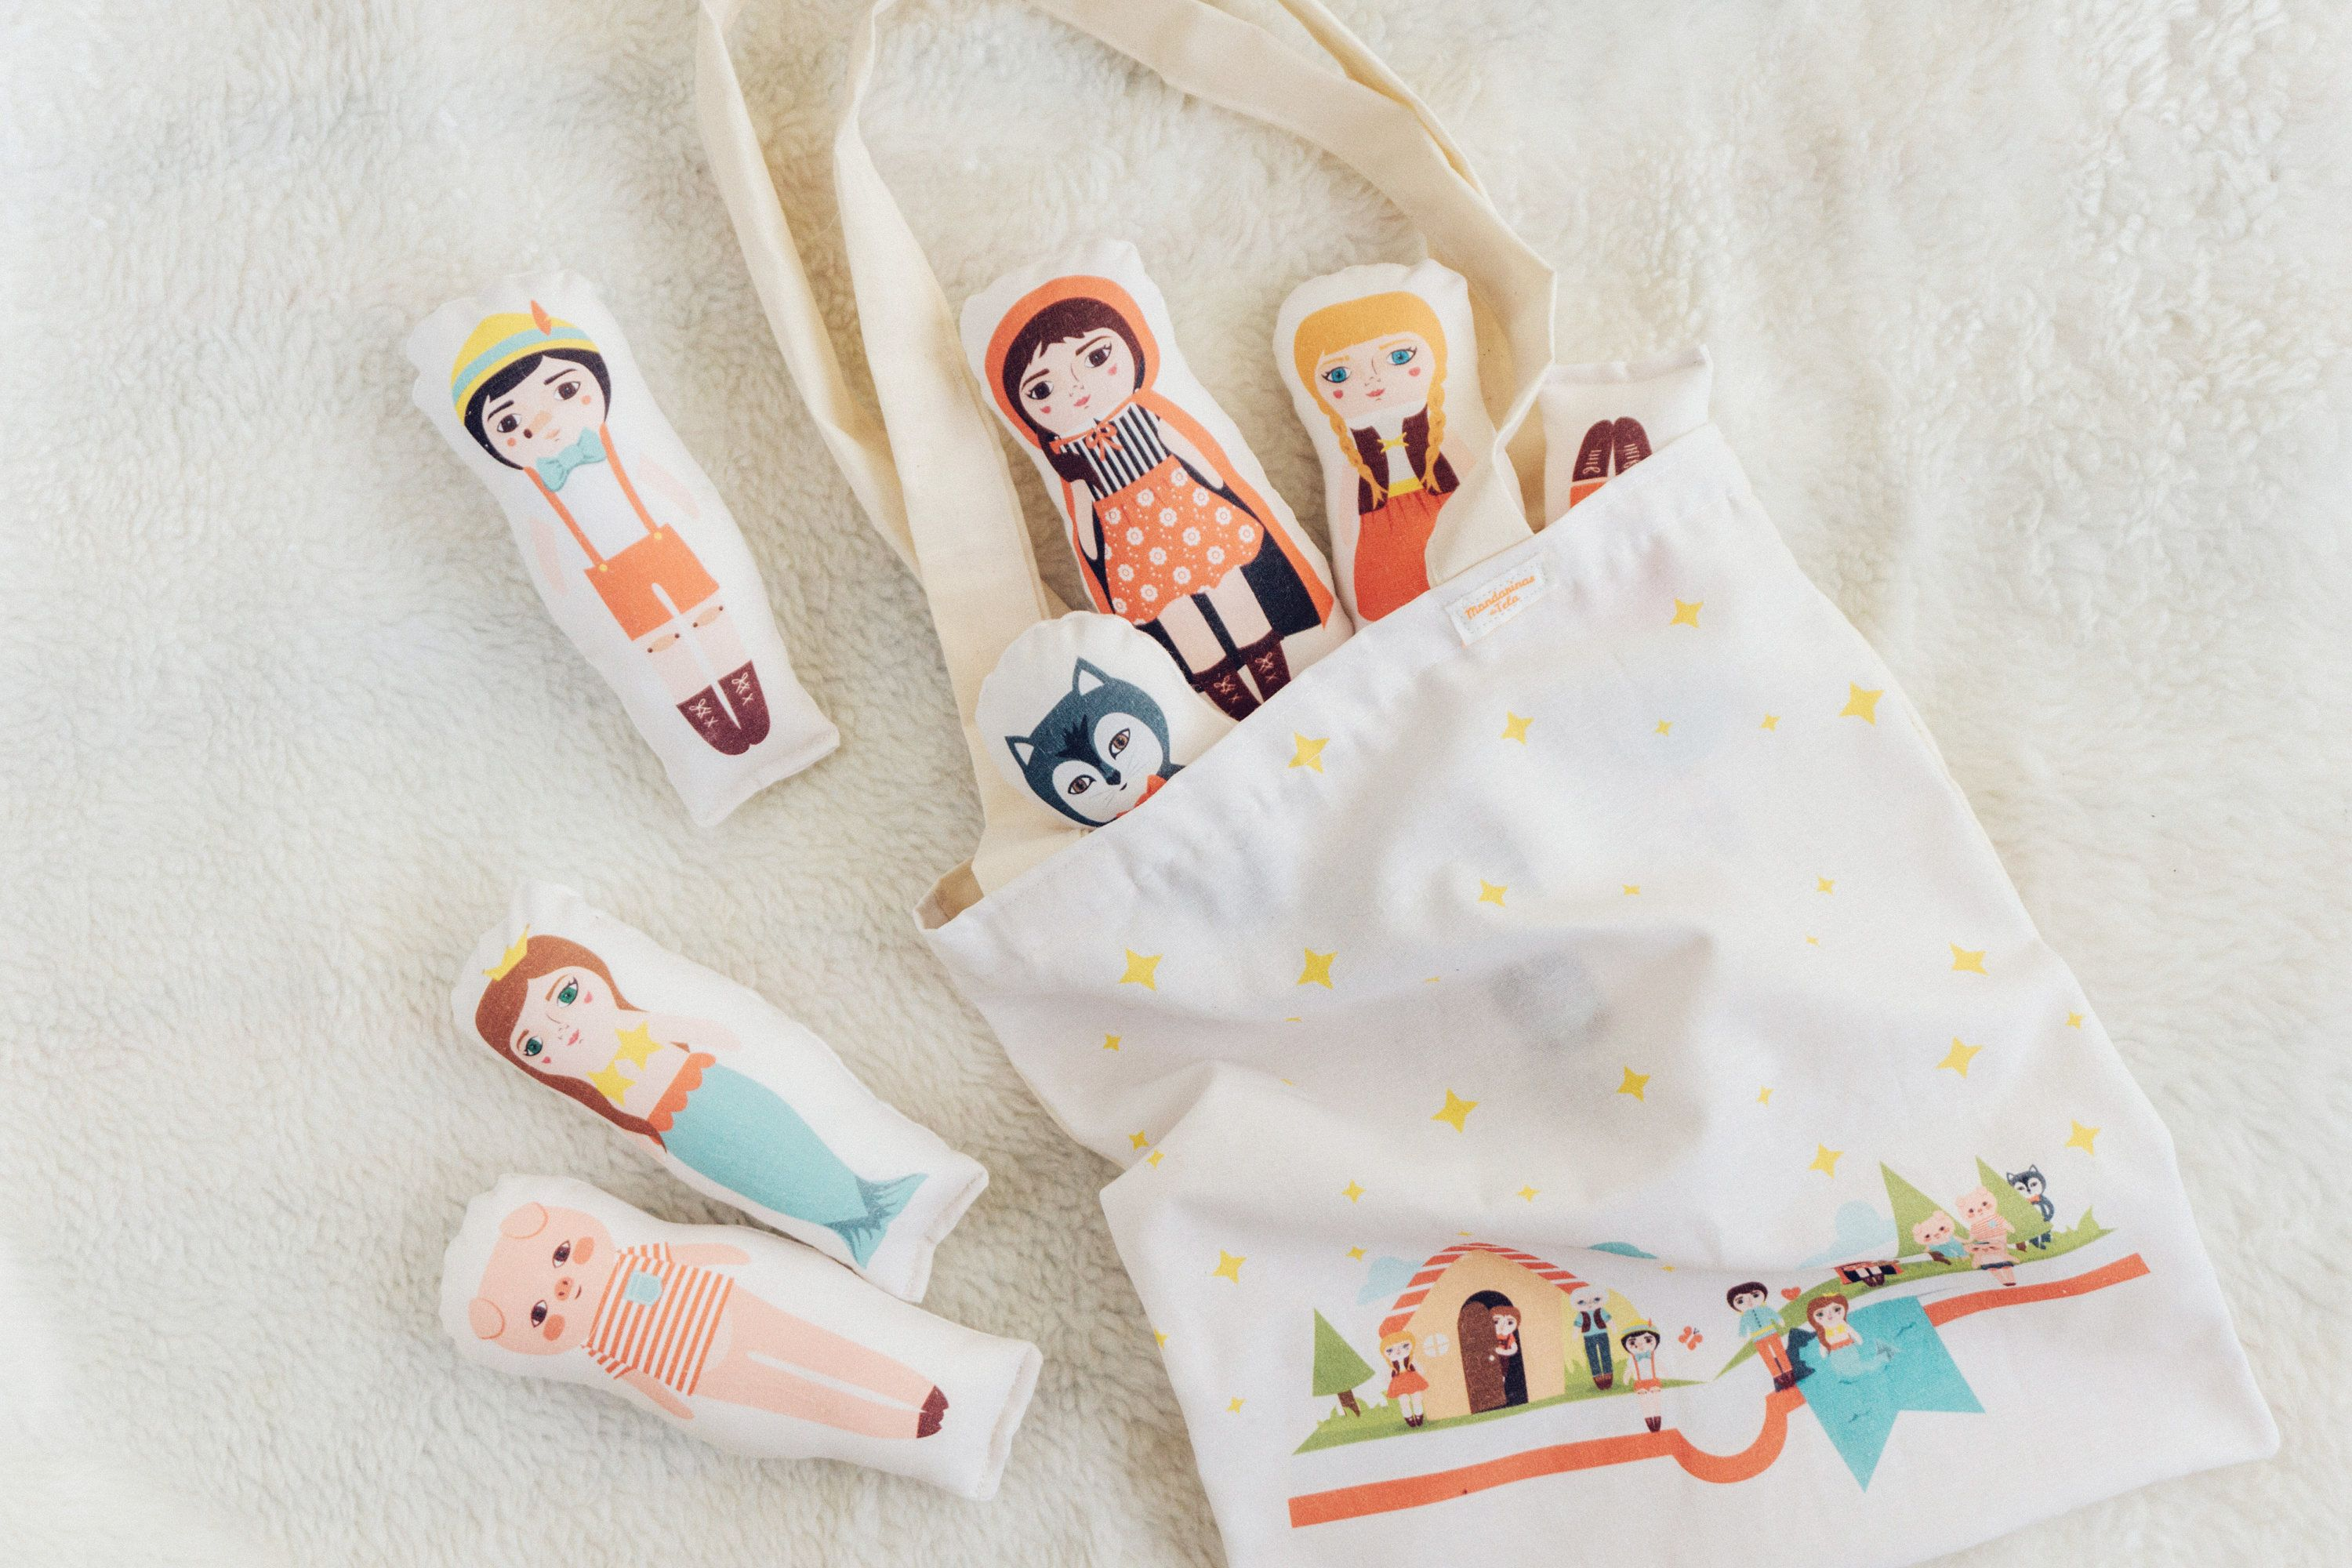 The new Cuentos Collection is now AVAILABLE FOR PRE-ORDER!  Reserve yours at a special launch price until August 18 and will be available on Monday 28!  Includes: Tote Bag, Hanging Wall Banner, 11 mini-dolls, Cushion Cover and Fabric Bunting.  Regular Price $90usd* PREORDER $65usd  Mini dolls: Little red riding hood & Wolf / Pinocchio & Geppetto / Hansel & Gretel / The three Little Pigs / Little Mermaid & Prince. Medida 2.7x6.7 inch / 7x17 cm. Tote Bag...